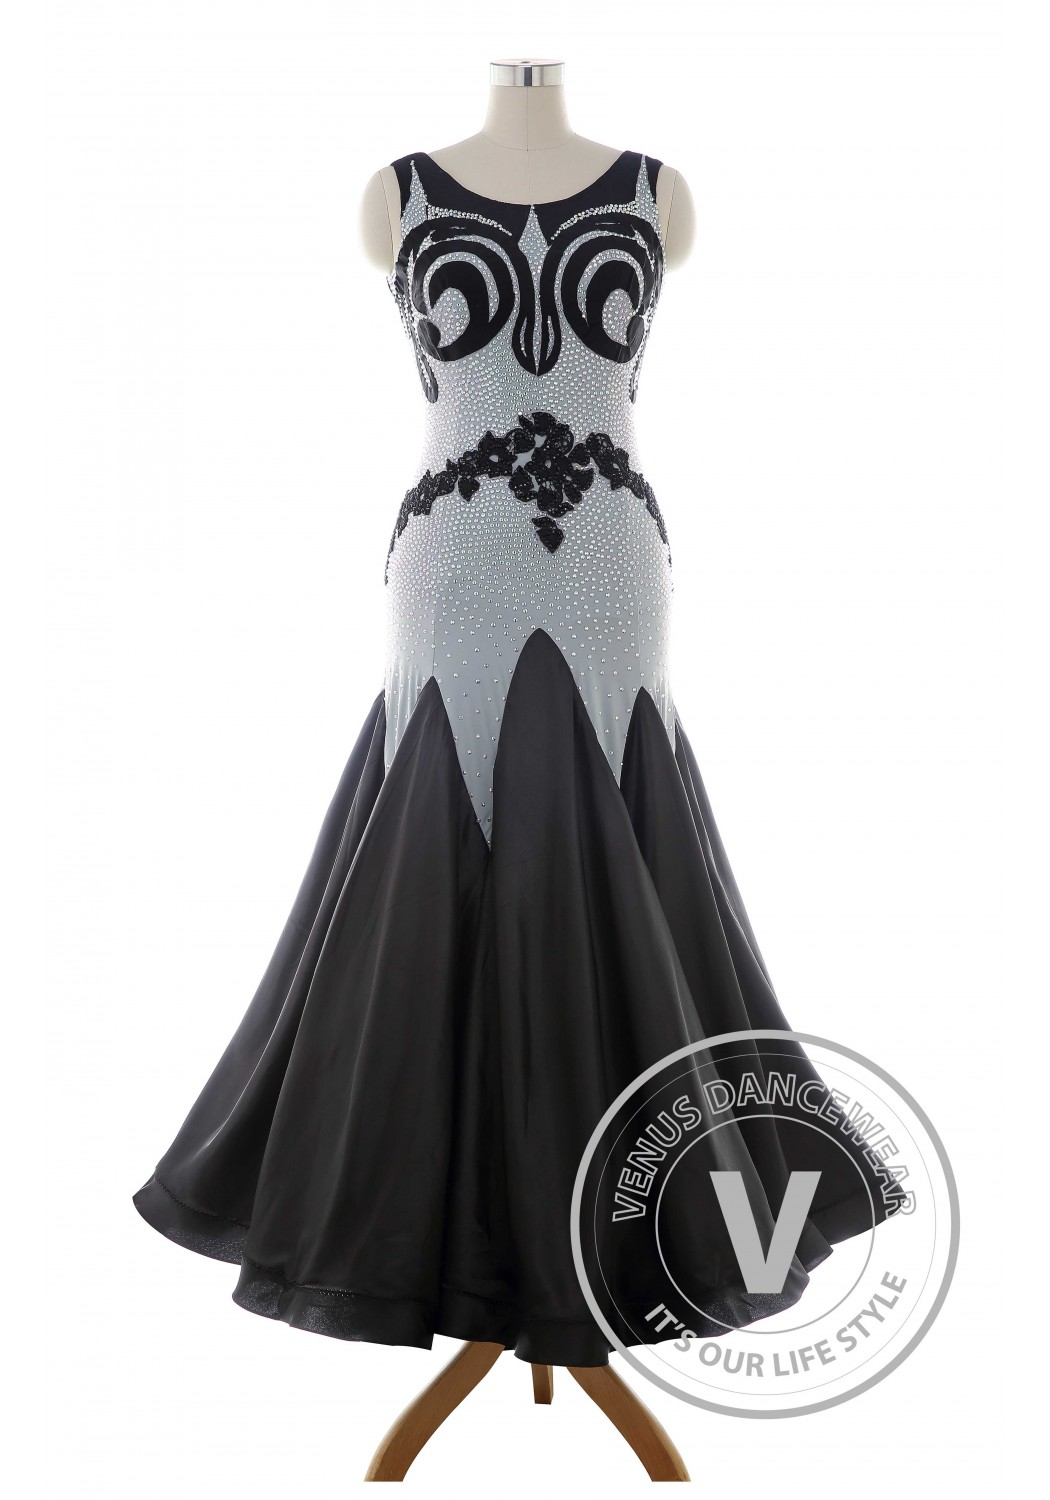 Luxury Black Standard Ballroom Tango Waltz Smooth Competition Dance Dress